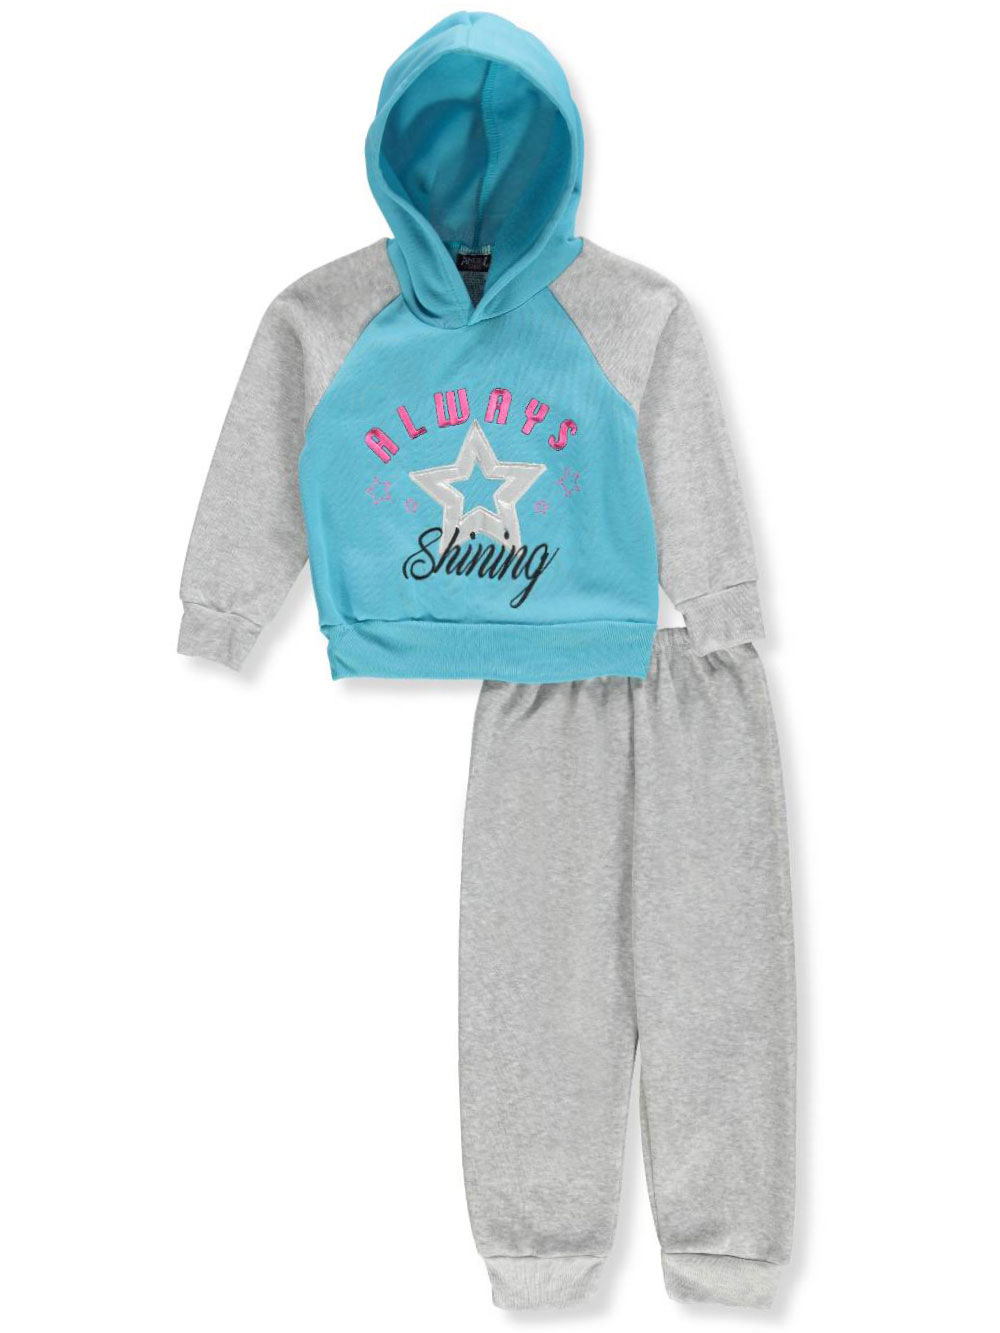 Angel Face Girls' 2-Piece Sweatsuit Pants Set